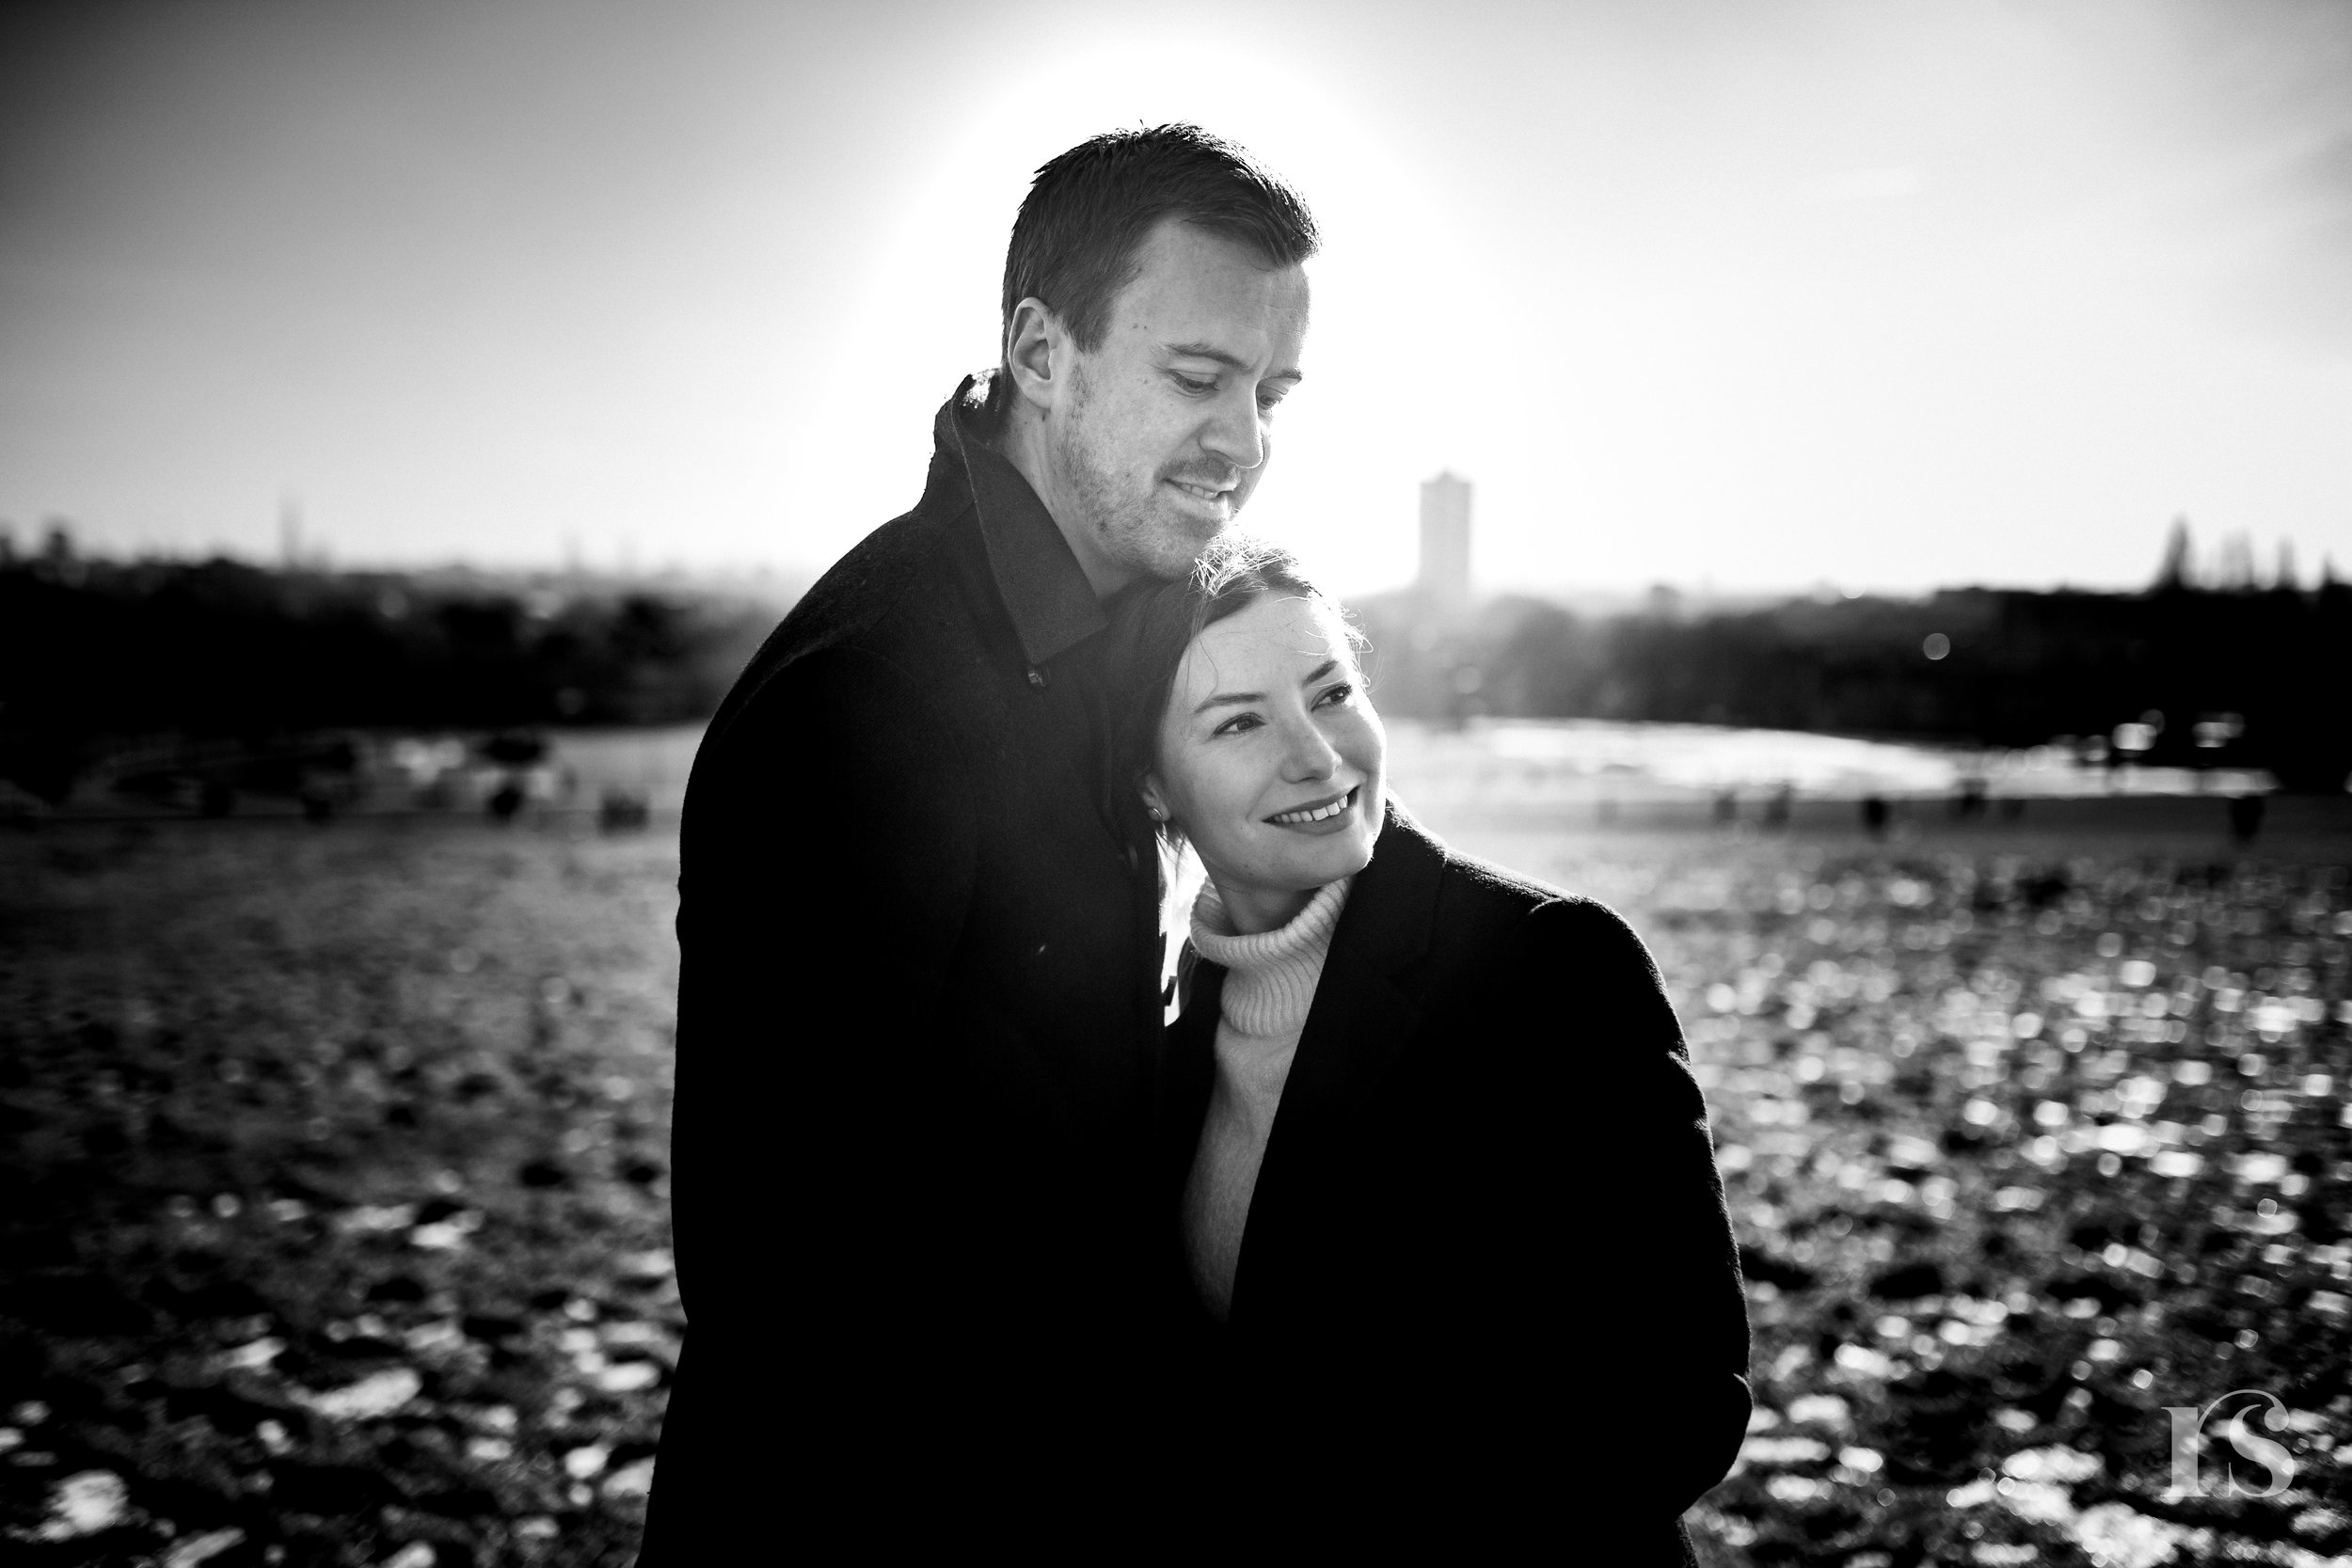 hampstead-heath-engagement-shoot-15.jpg